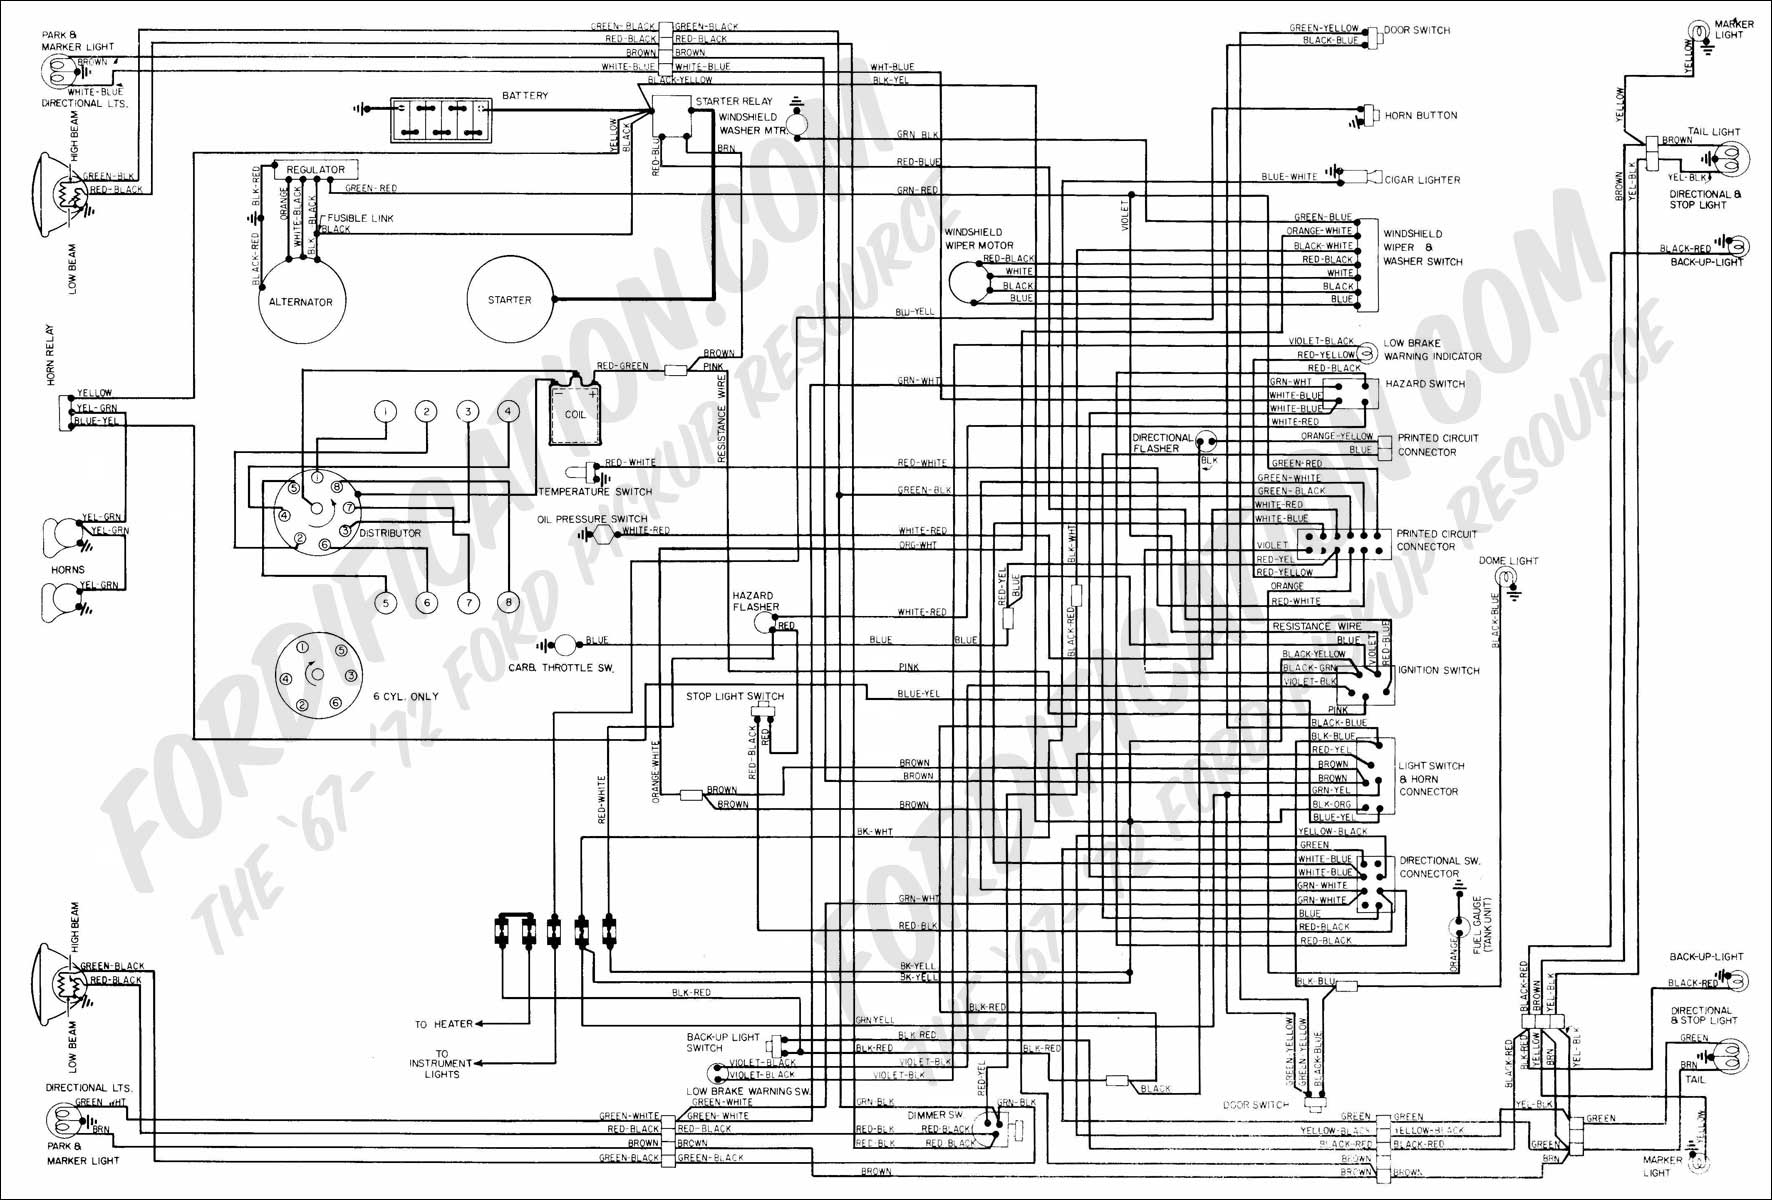 2003 E250 Wiring Diagram - wiring diagrams schematics